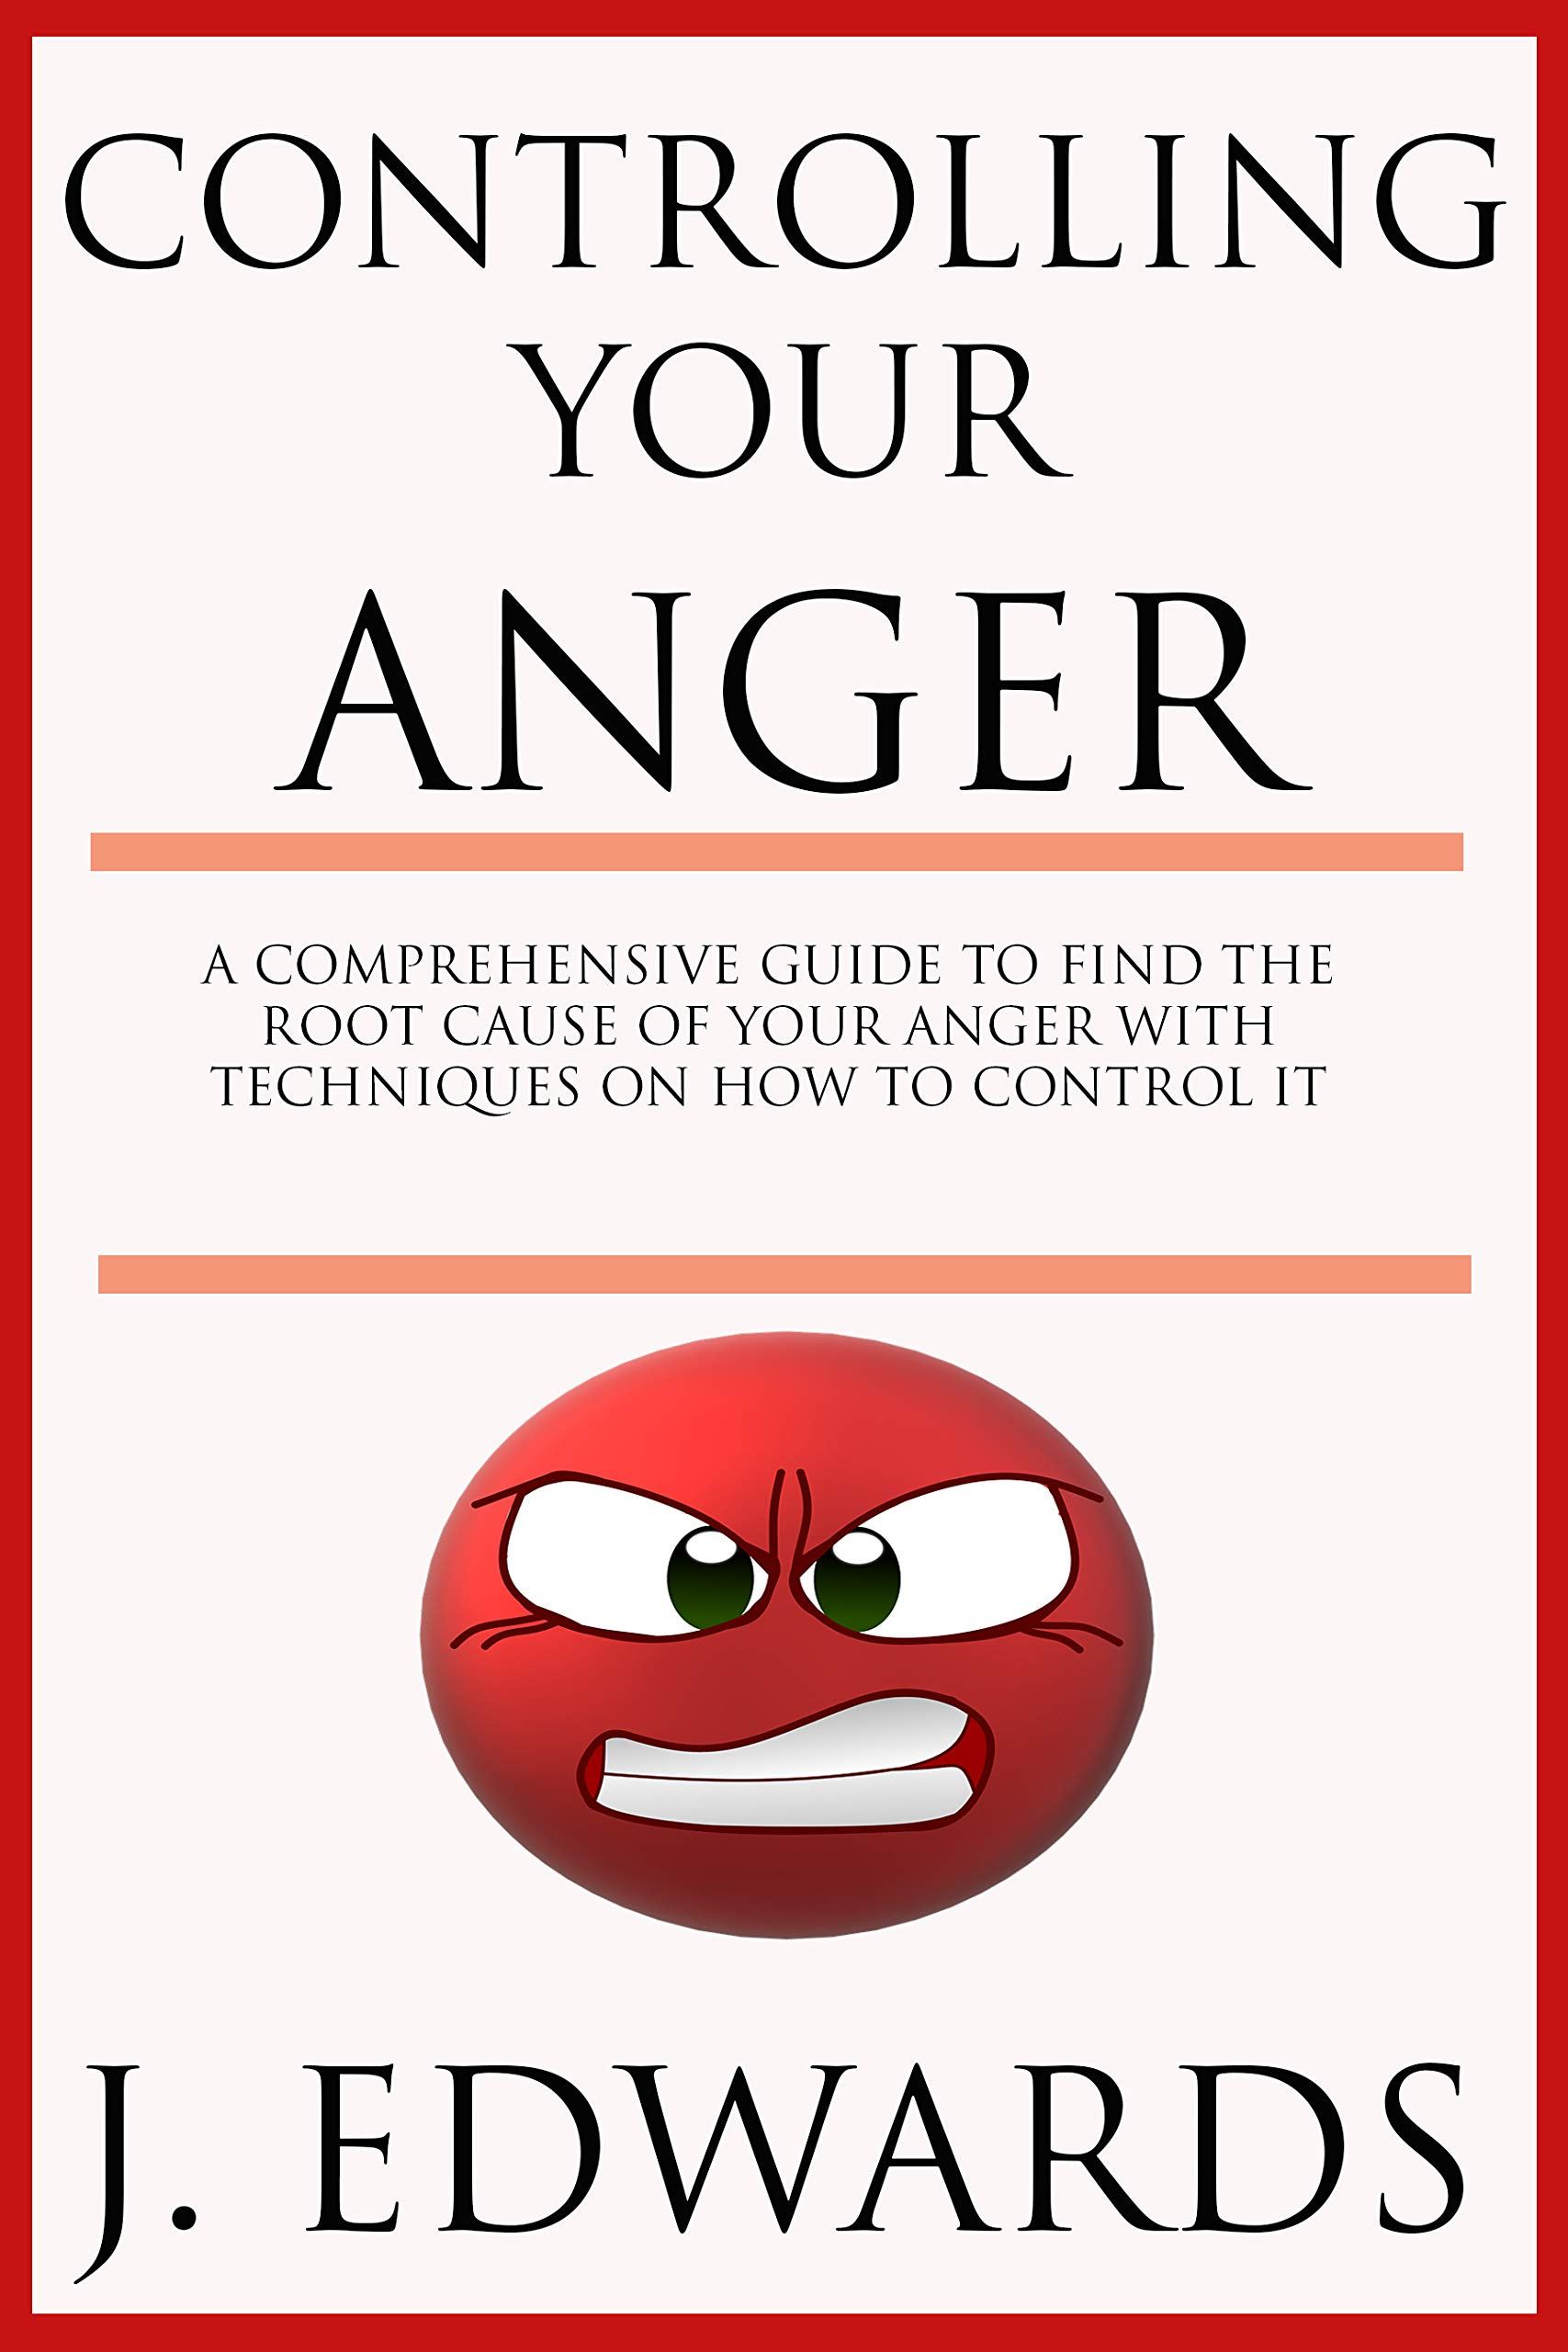 Controlling Your Anger: A Comprehensive Guide To Finding The Root Cause Of Your Anger With Proven Techniques On How To Con...